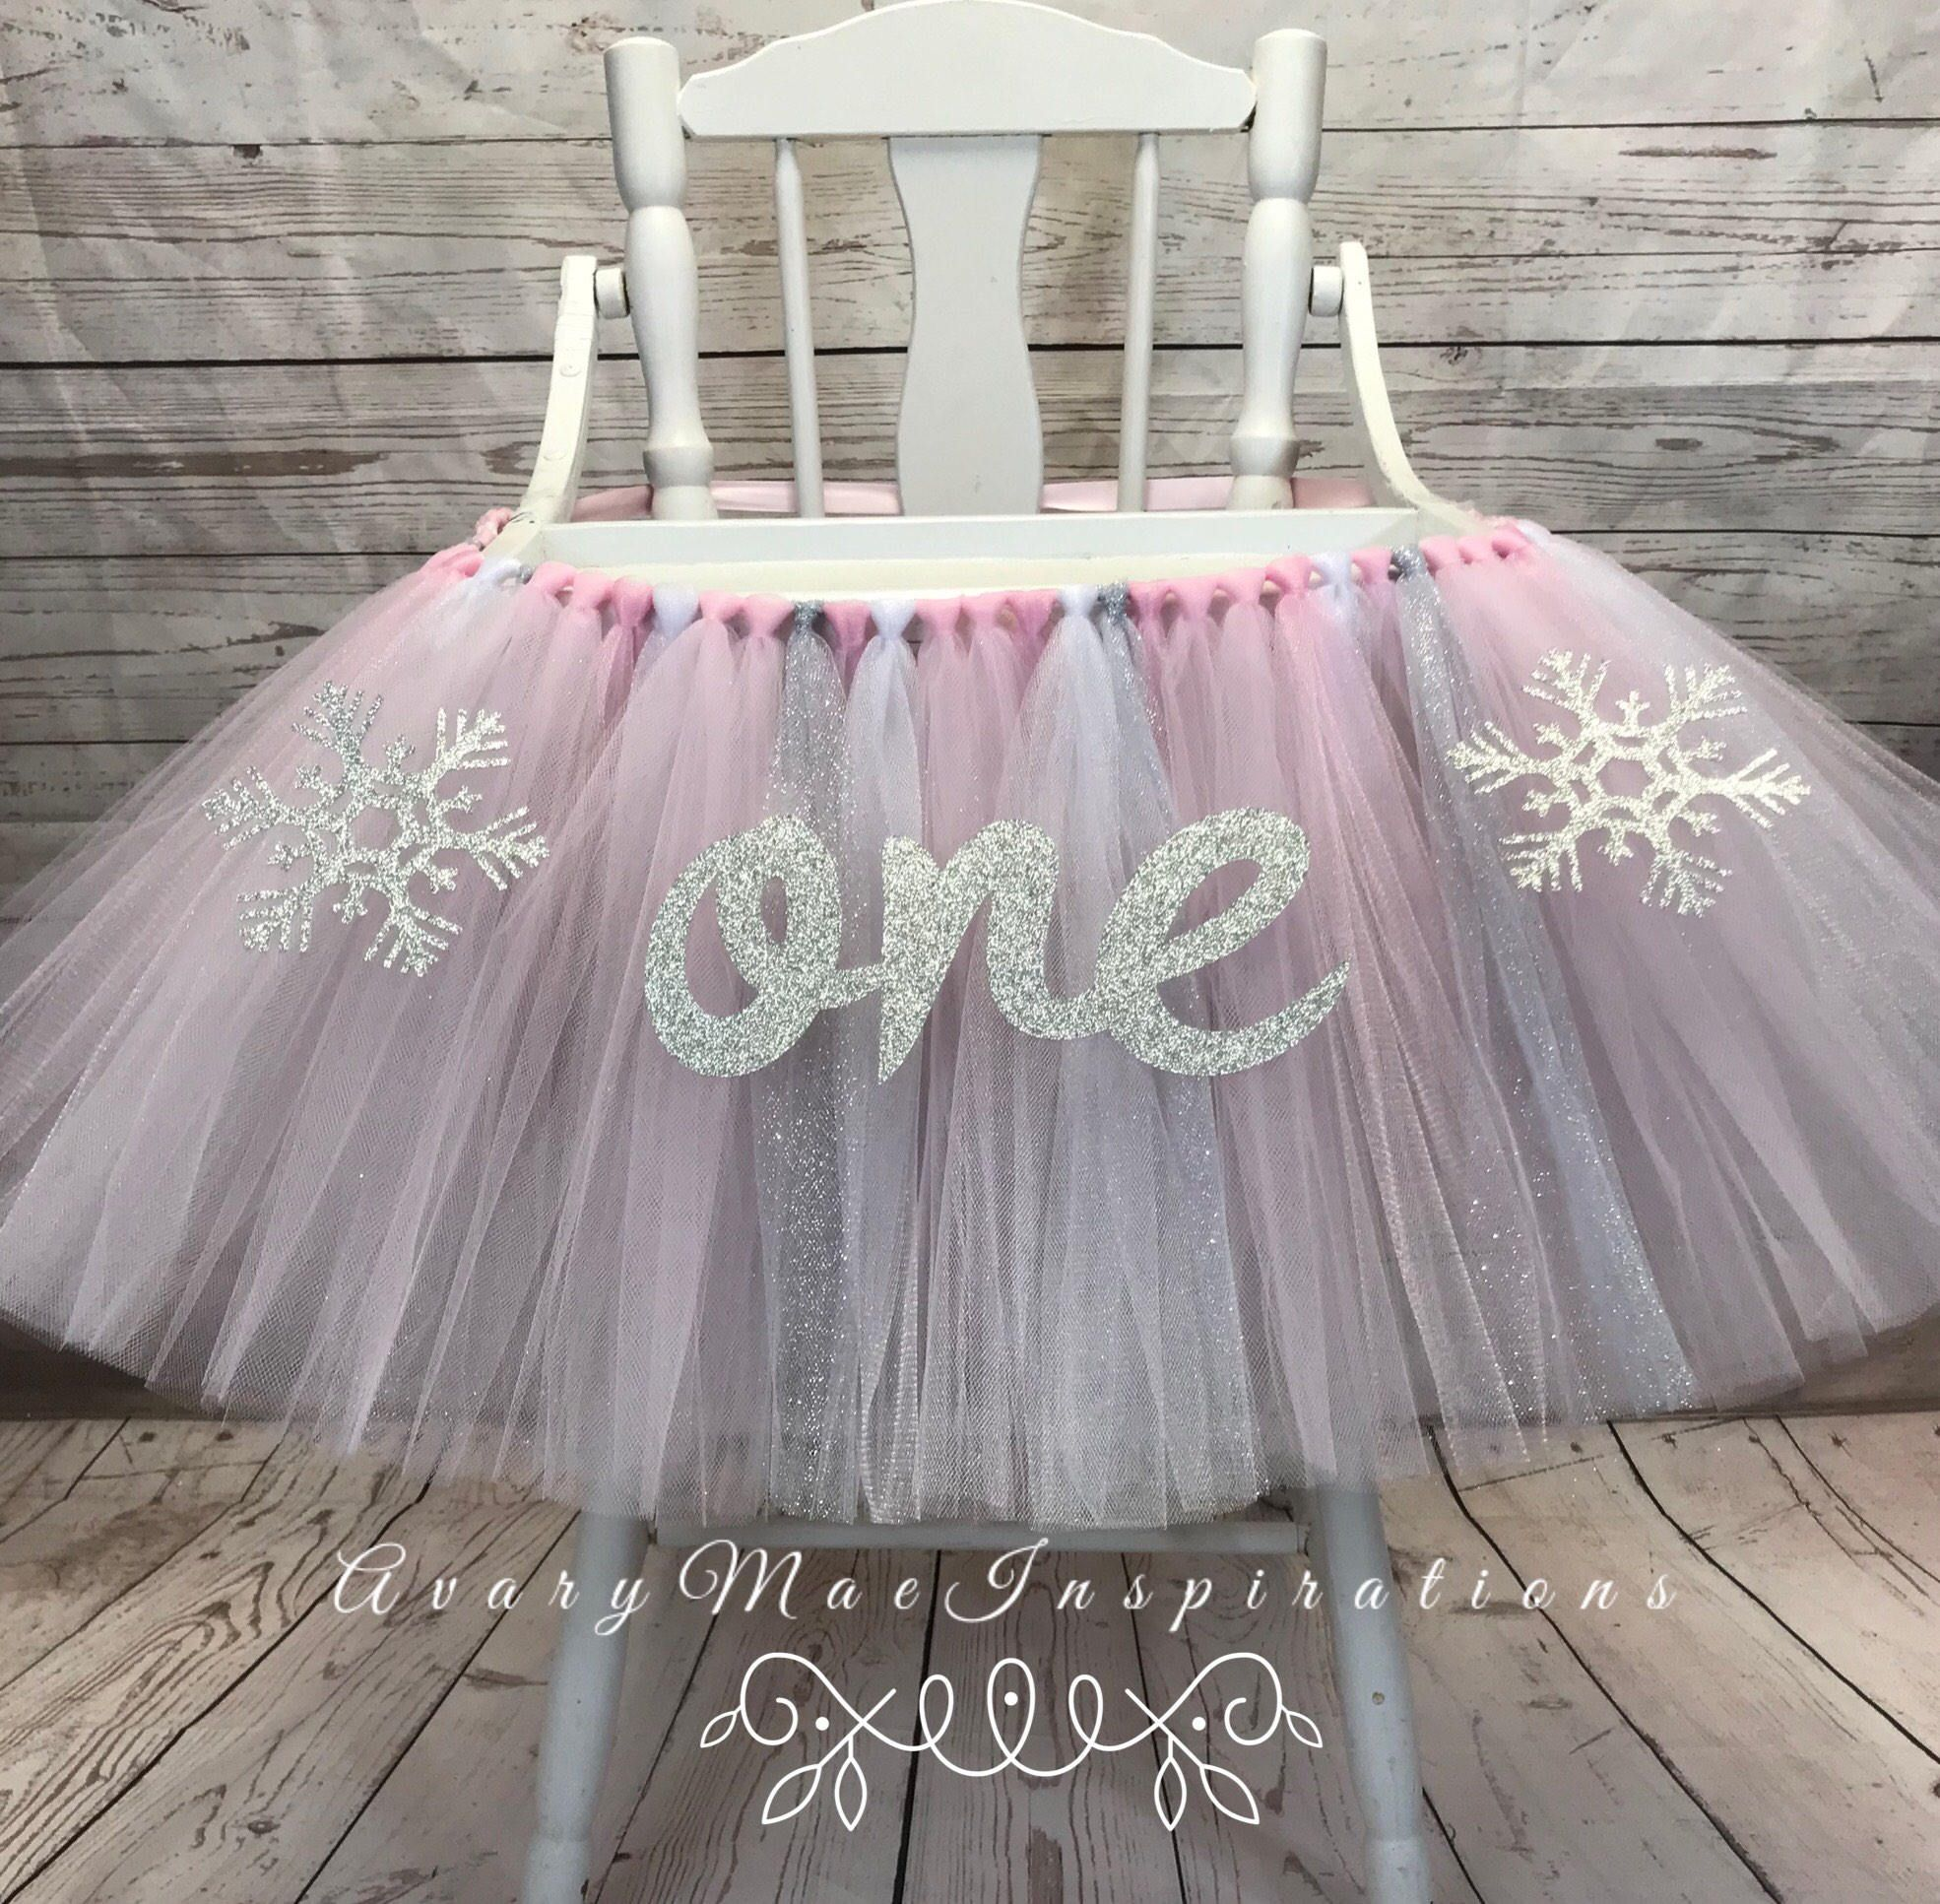 High Chair Tutu Winter Onederland High Chair Banner Pink Etsy Winter Onederland Birthday Party Winter Wonderland Birthday Party Onederland Birthday Party